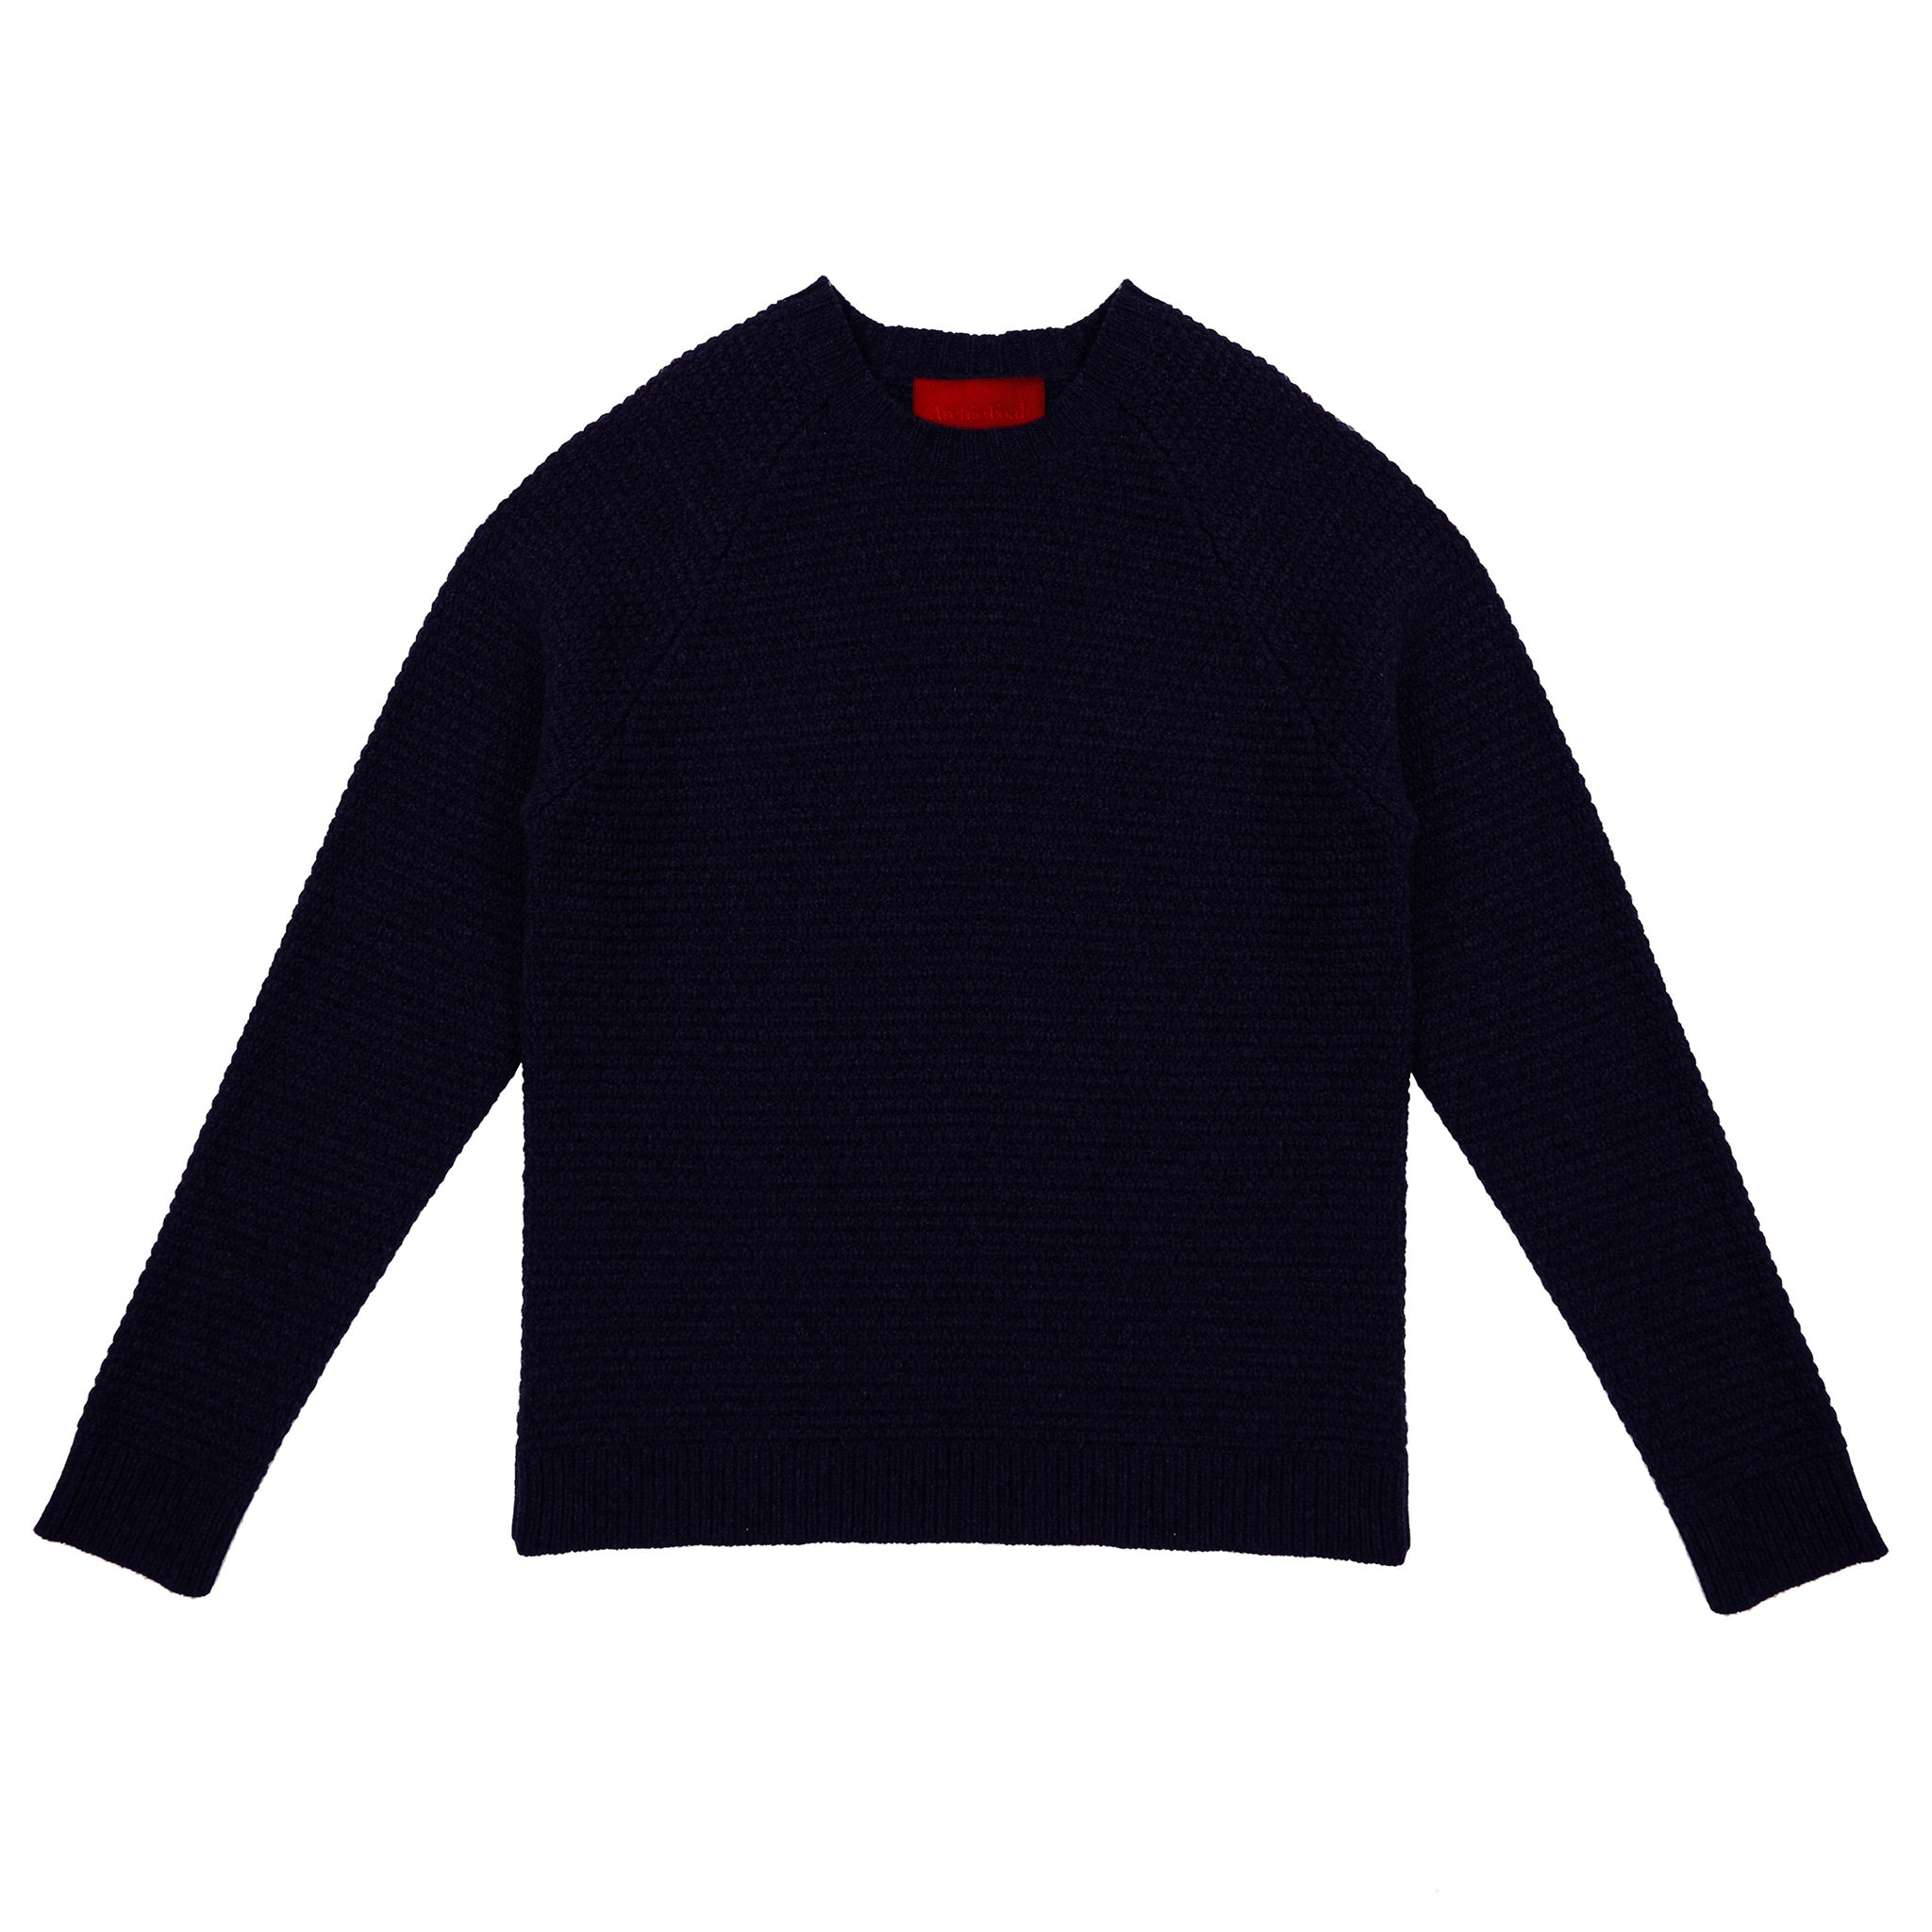 Archie Foal Men's Colm Sweater in Navy